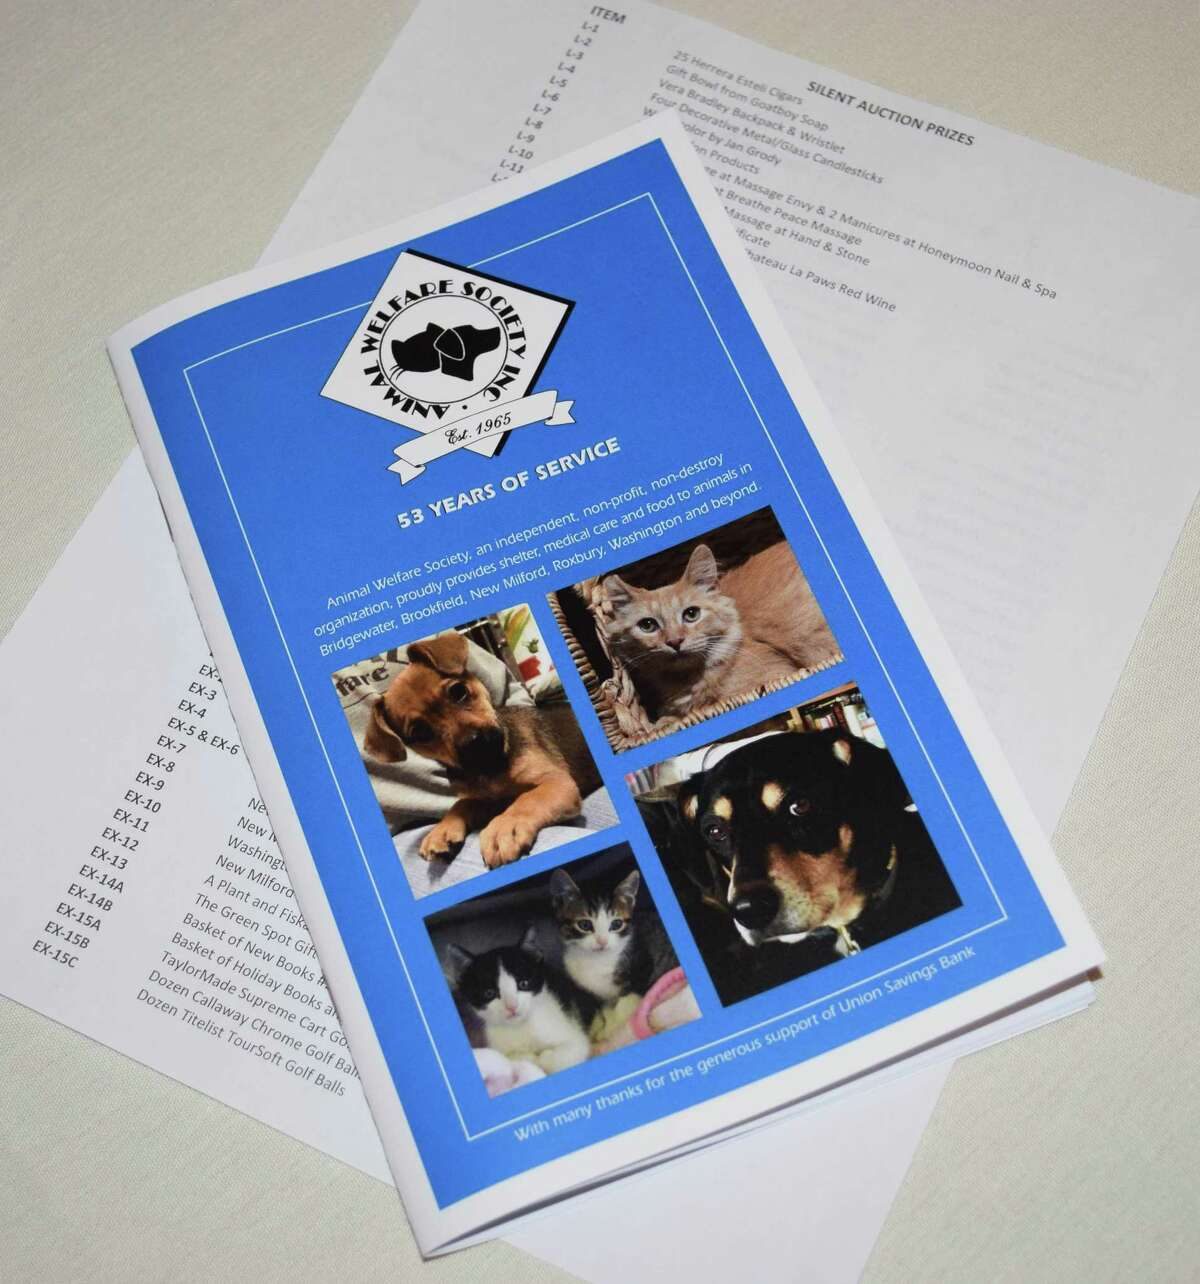 Animal Welfare Society of New Milford held its fifth annual breakfast at Candlewood Valley Country Club in town.